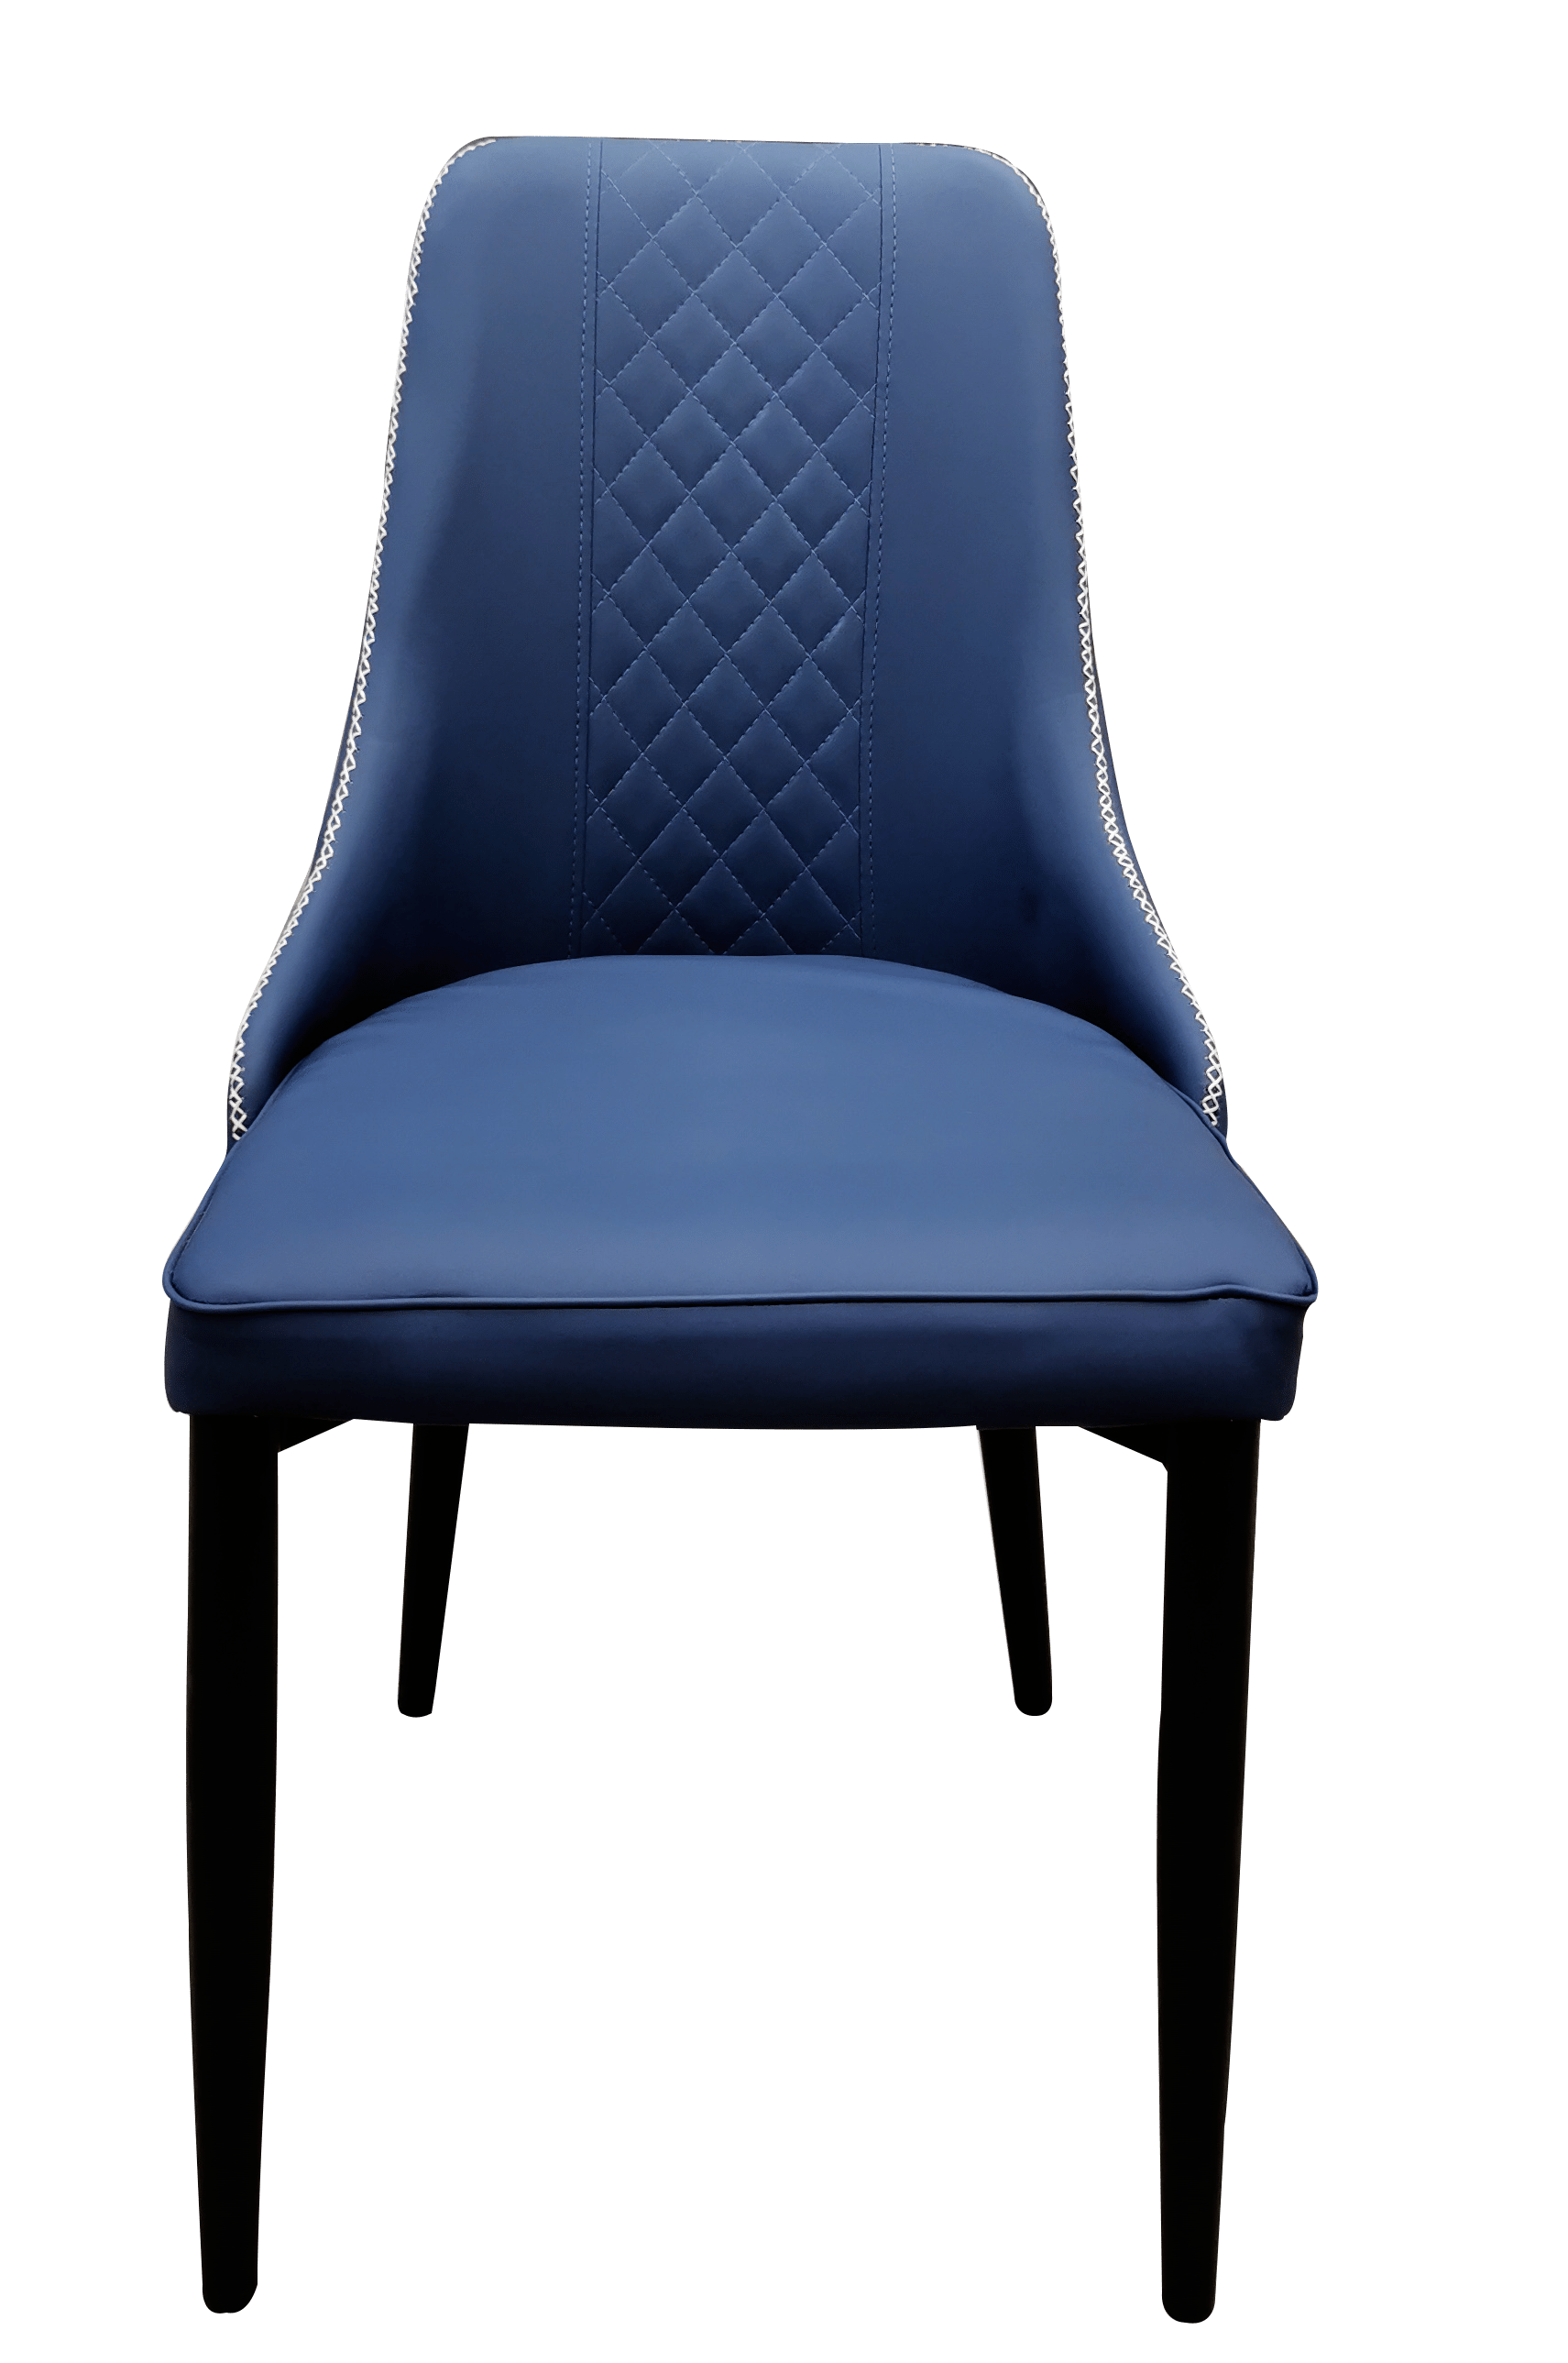 Dining Chair -  Regal Luxe DC0136 - Italhouse